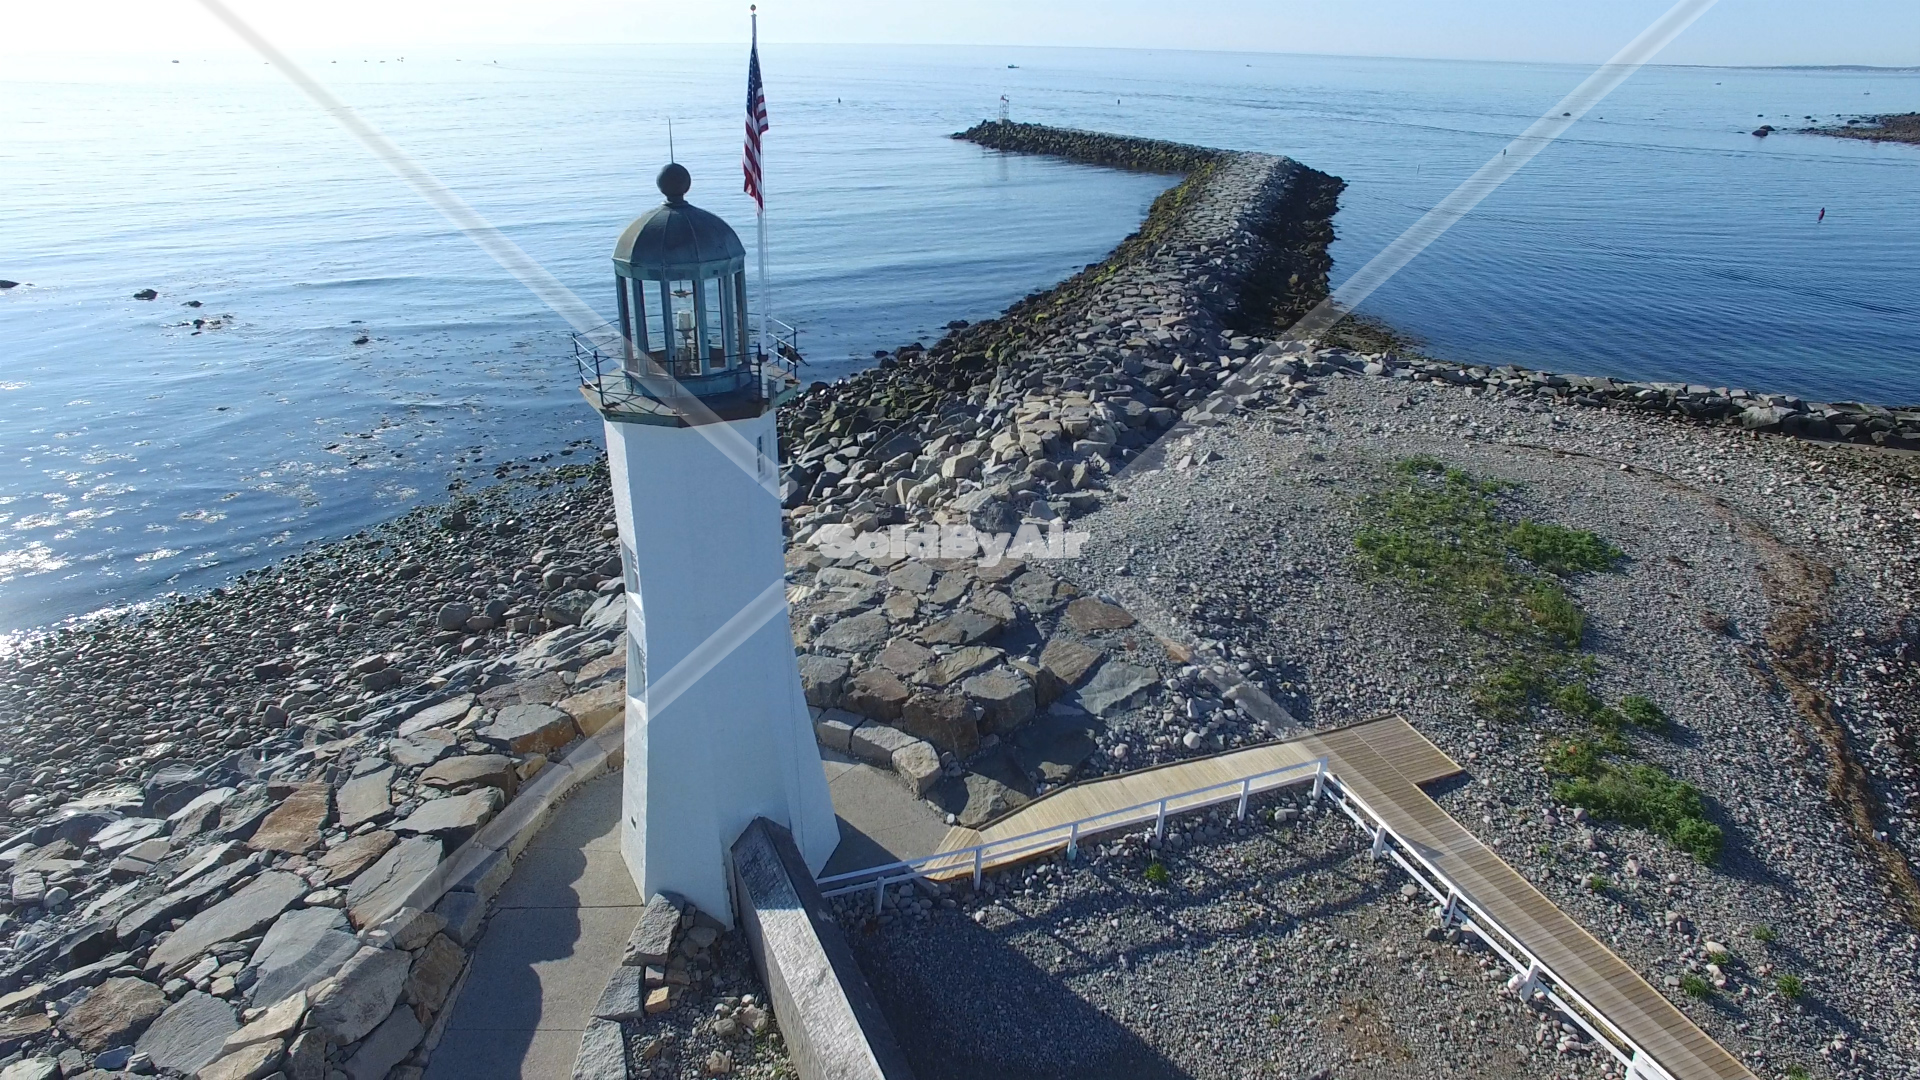 Drone Photo of Sunrise at Scituate Lighthouse in Scituate Massachusetts